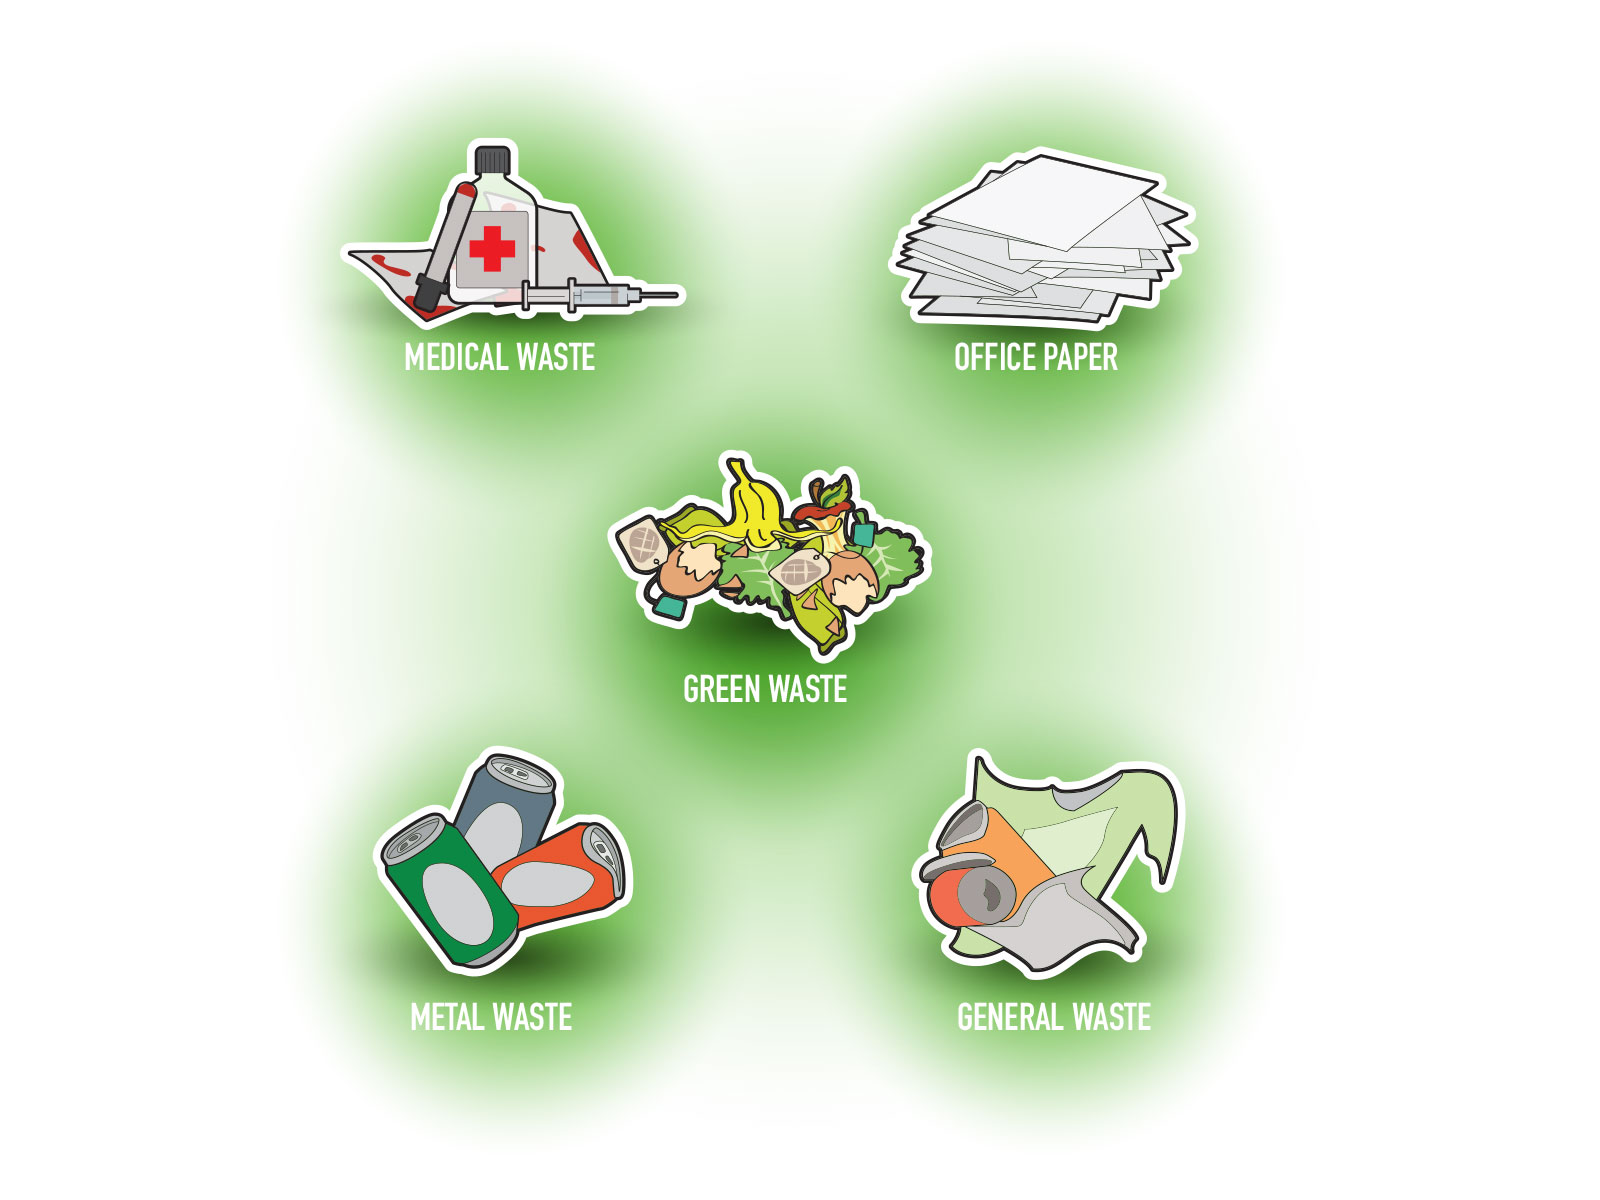 Stylised vector illustration icons of different types of waste